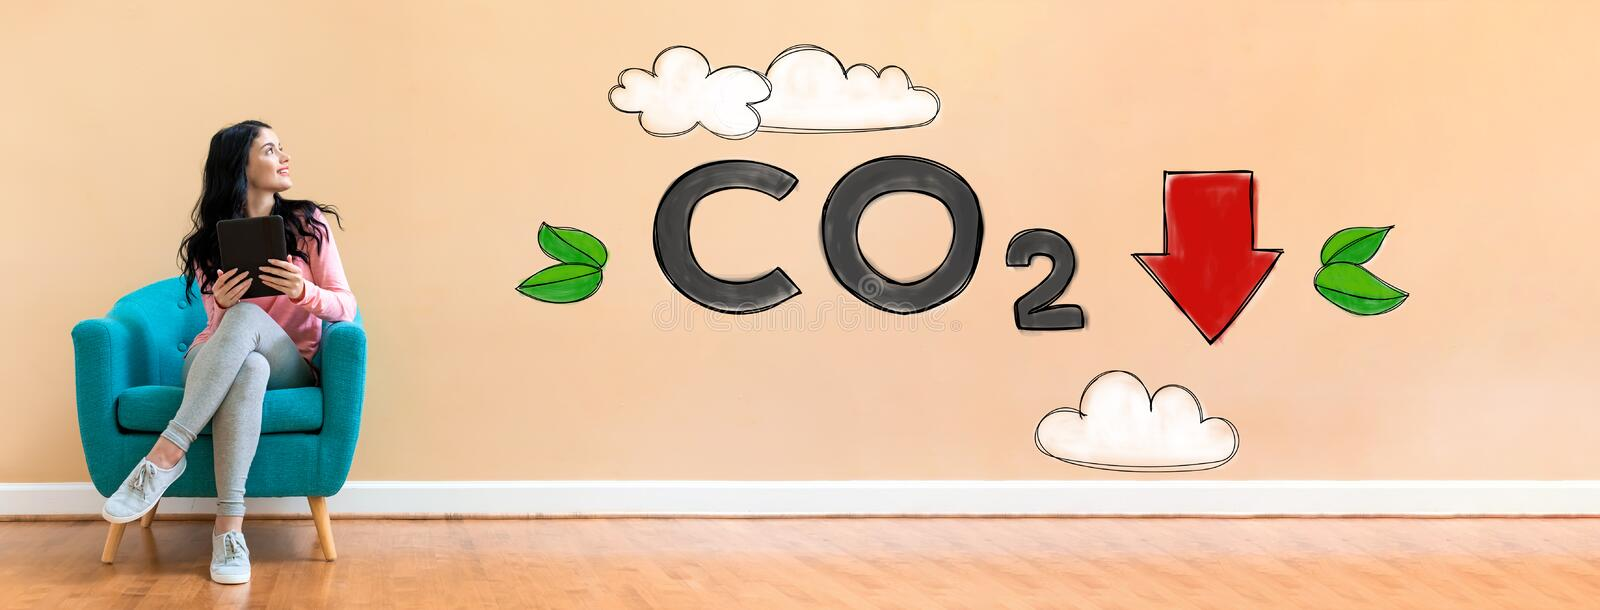 Reduce CO2 with woman using a tablet royalty free illustration